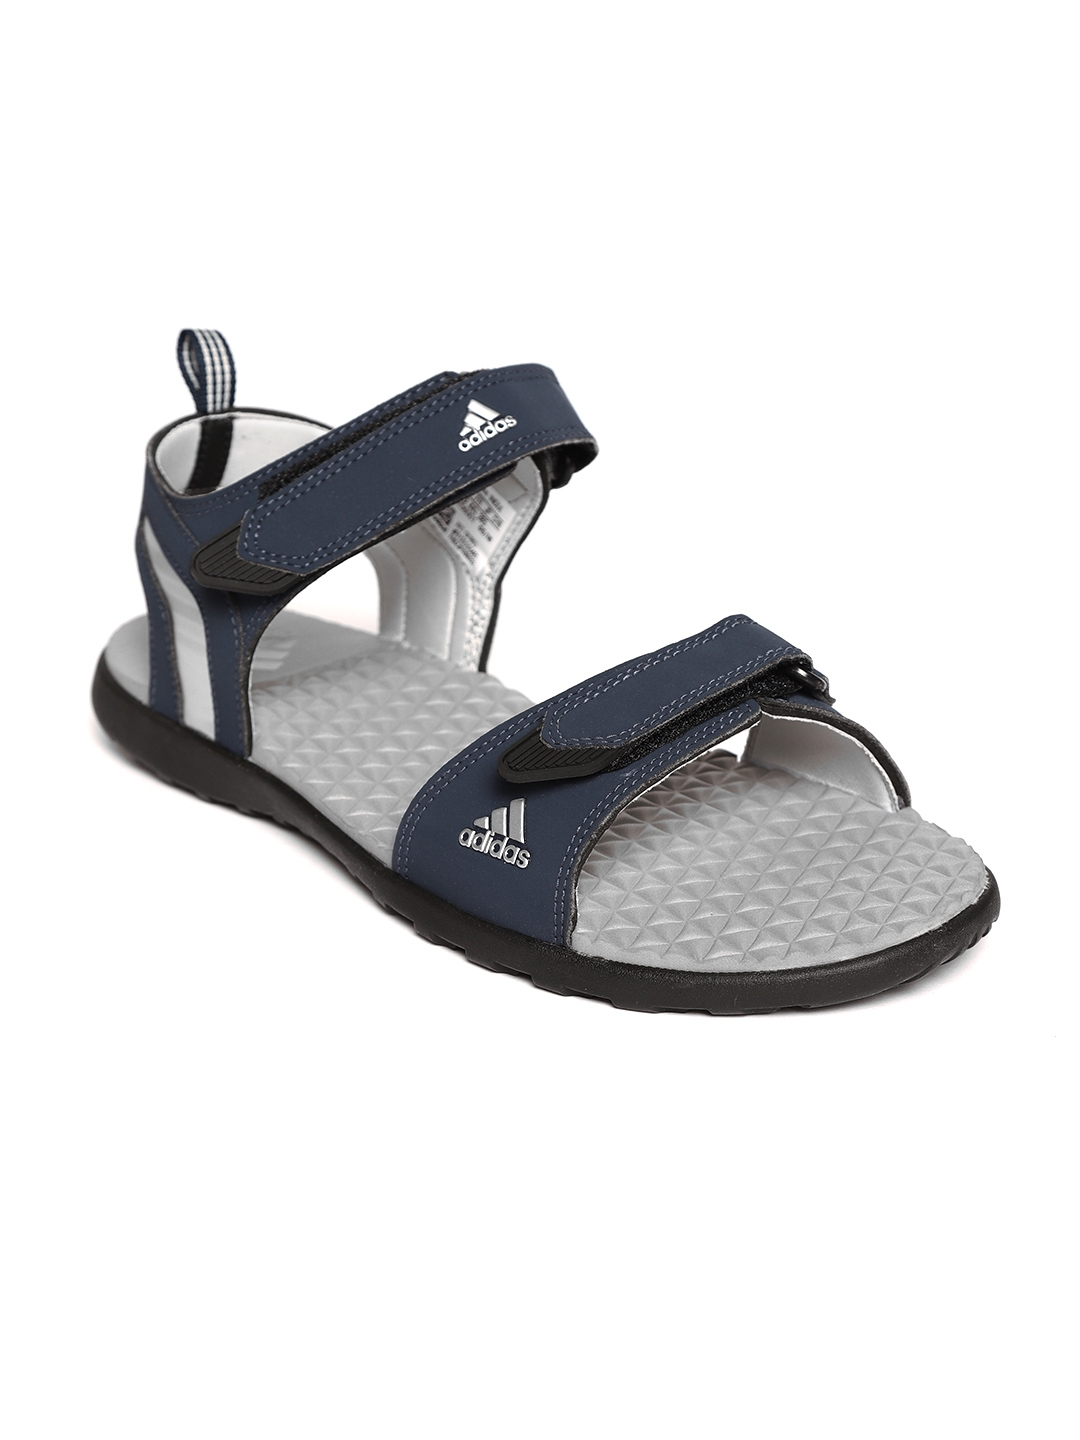 dda5af60bfb5 Buy ADIDAS Men Navy Blue MOBE Sports Sandals - Sports Sandals for ...